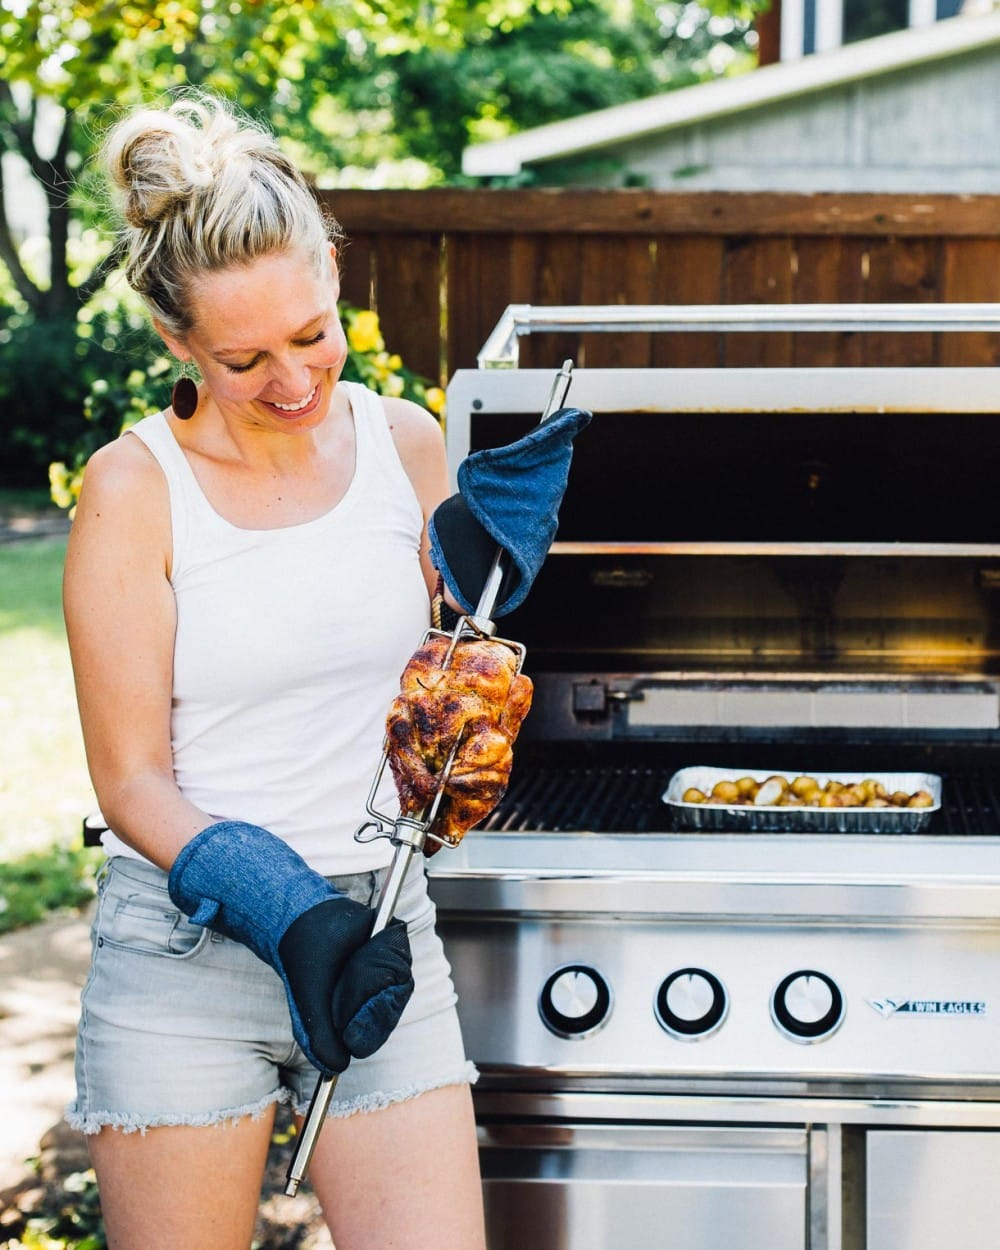 girl holding a rotisserie chicken attached to a spit, open grill in backround